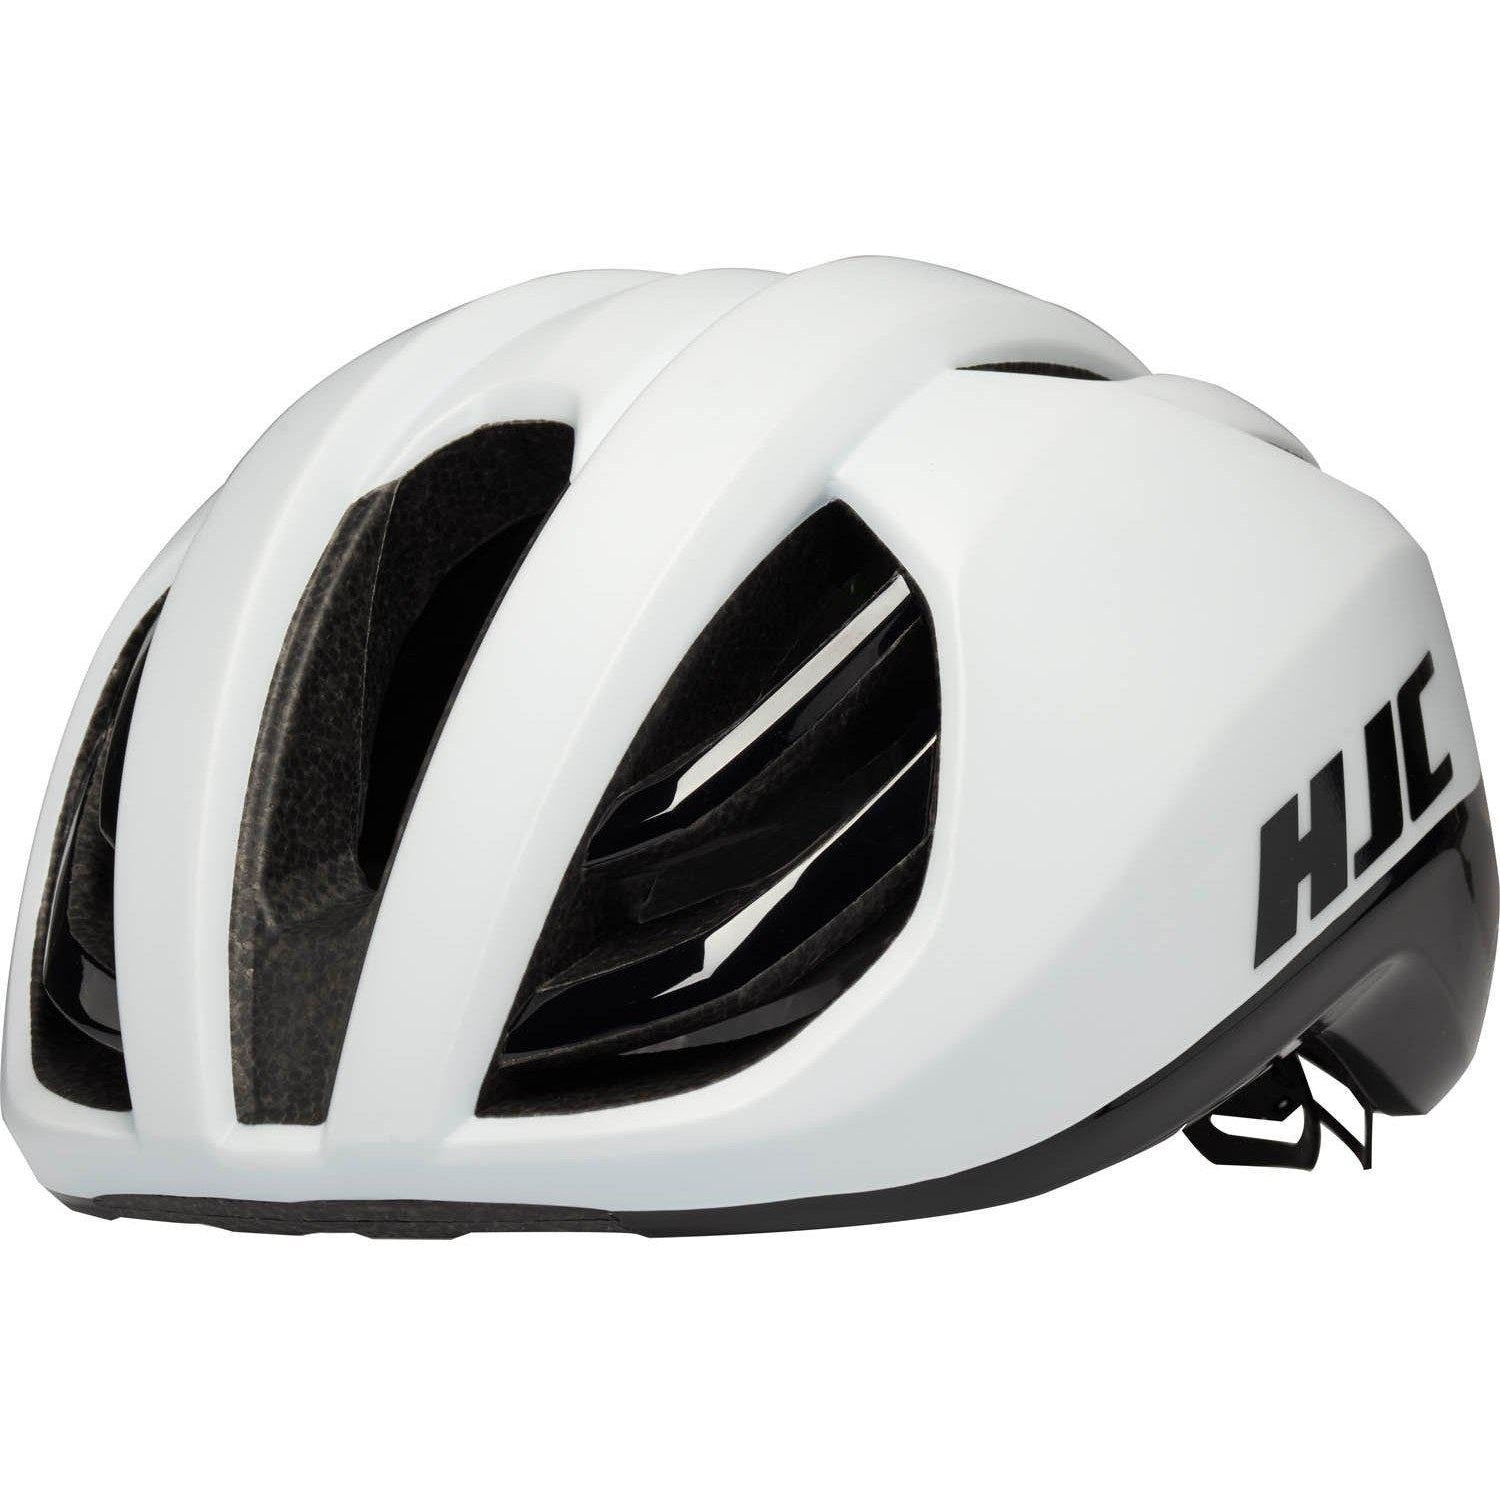 HJC-HJC Atara Road Cycling Helmet-S-White-HJC81189001-saddleback-elite-performance-cycling